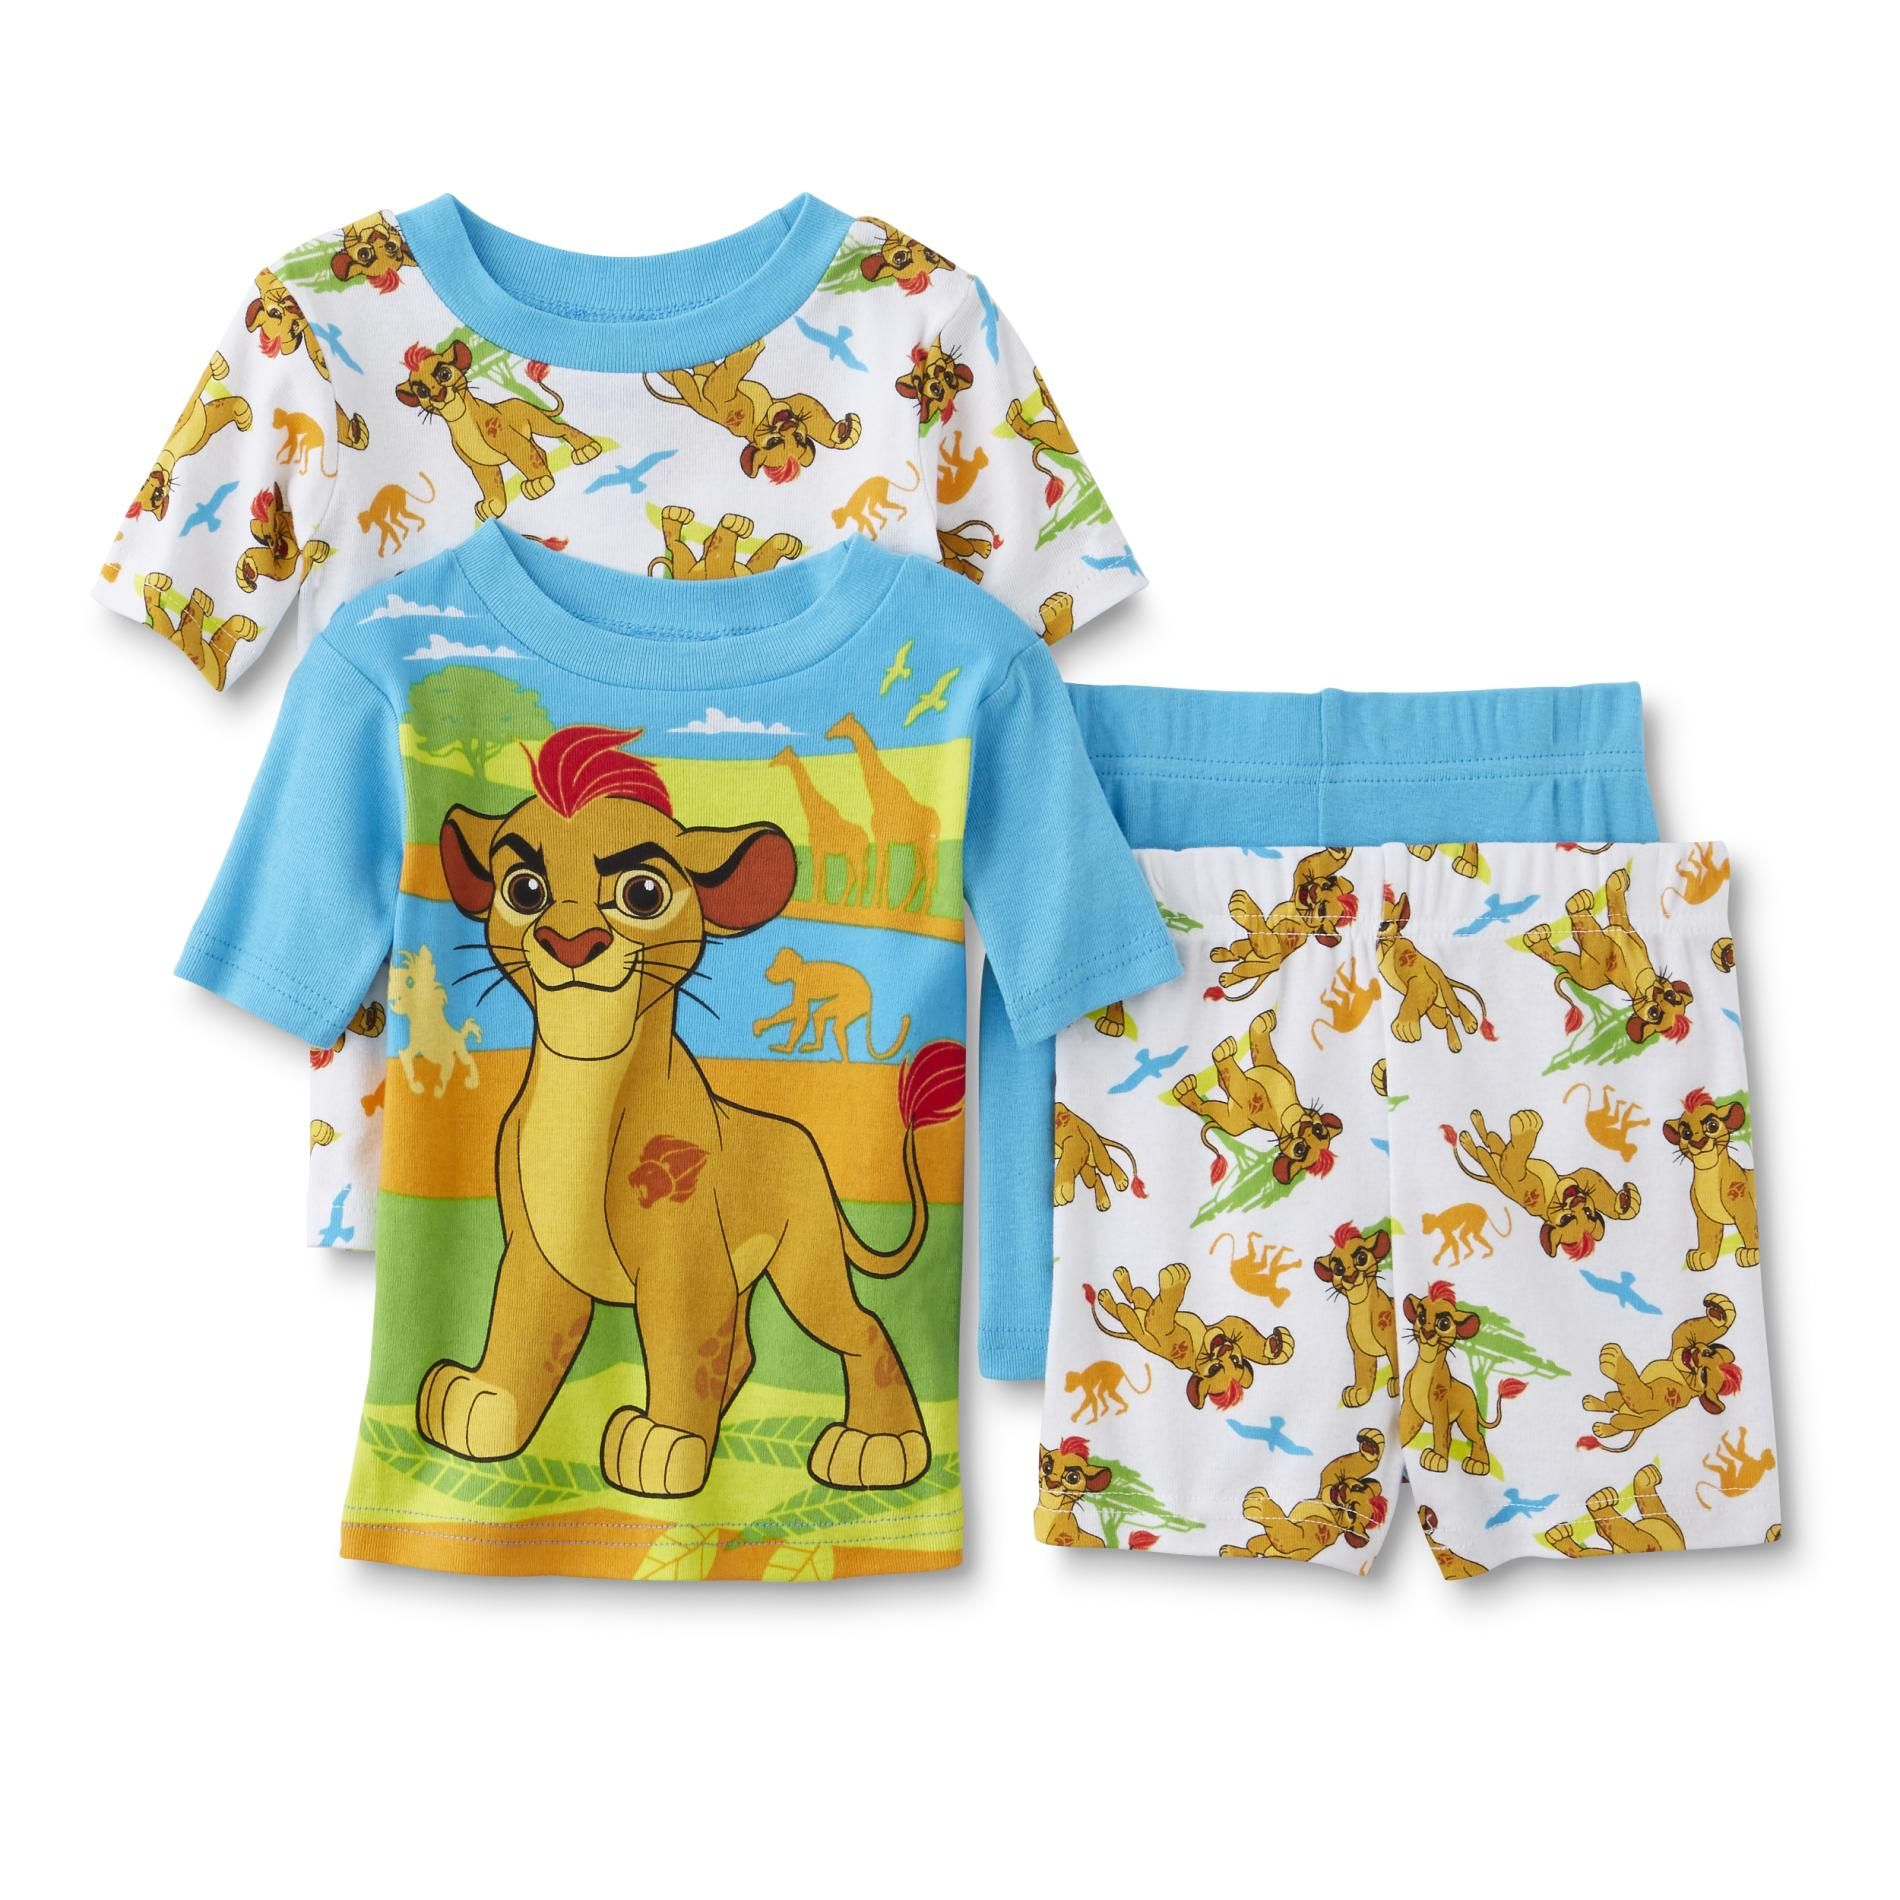 Disney Baby The Lion Guard Infant Toddler Boys 2 Pairs Pajamas Toddler Boy S Baby Disney Boy Outfits Toddler Fashion